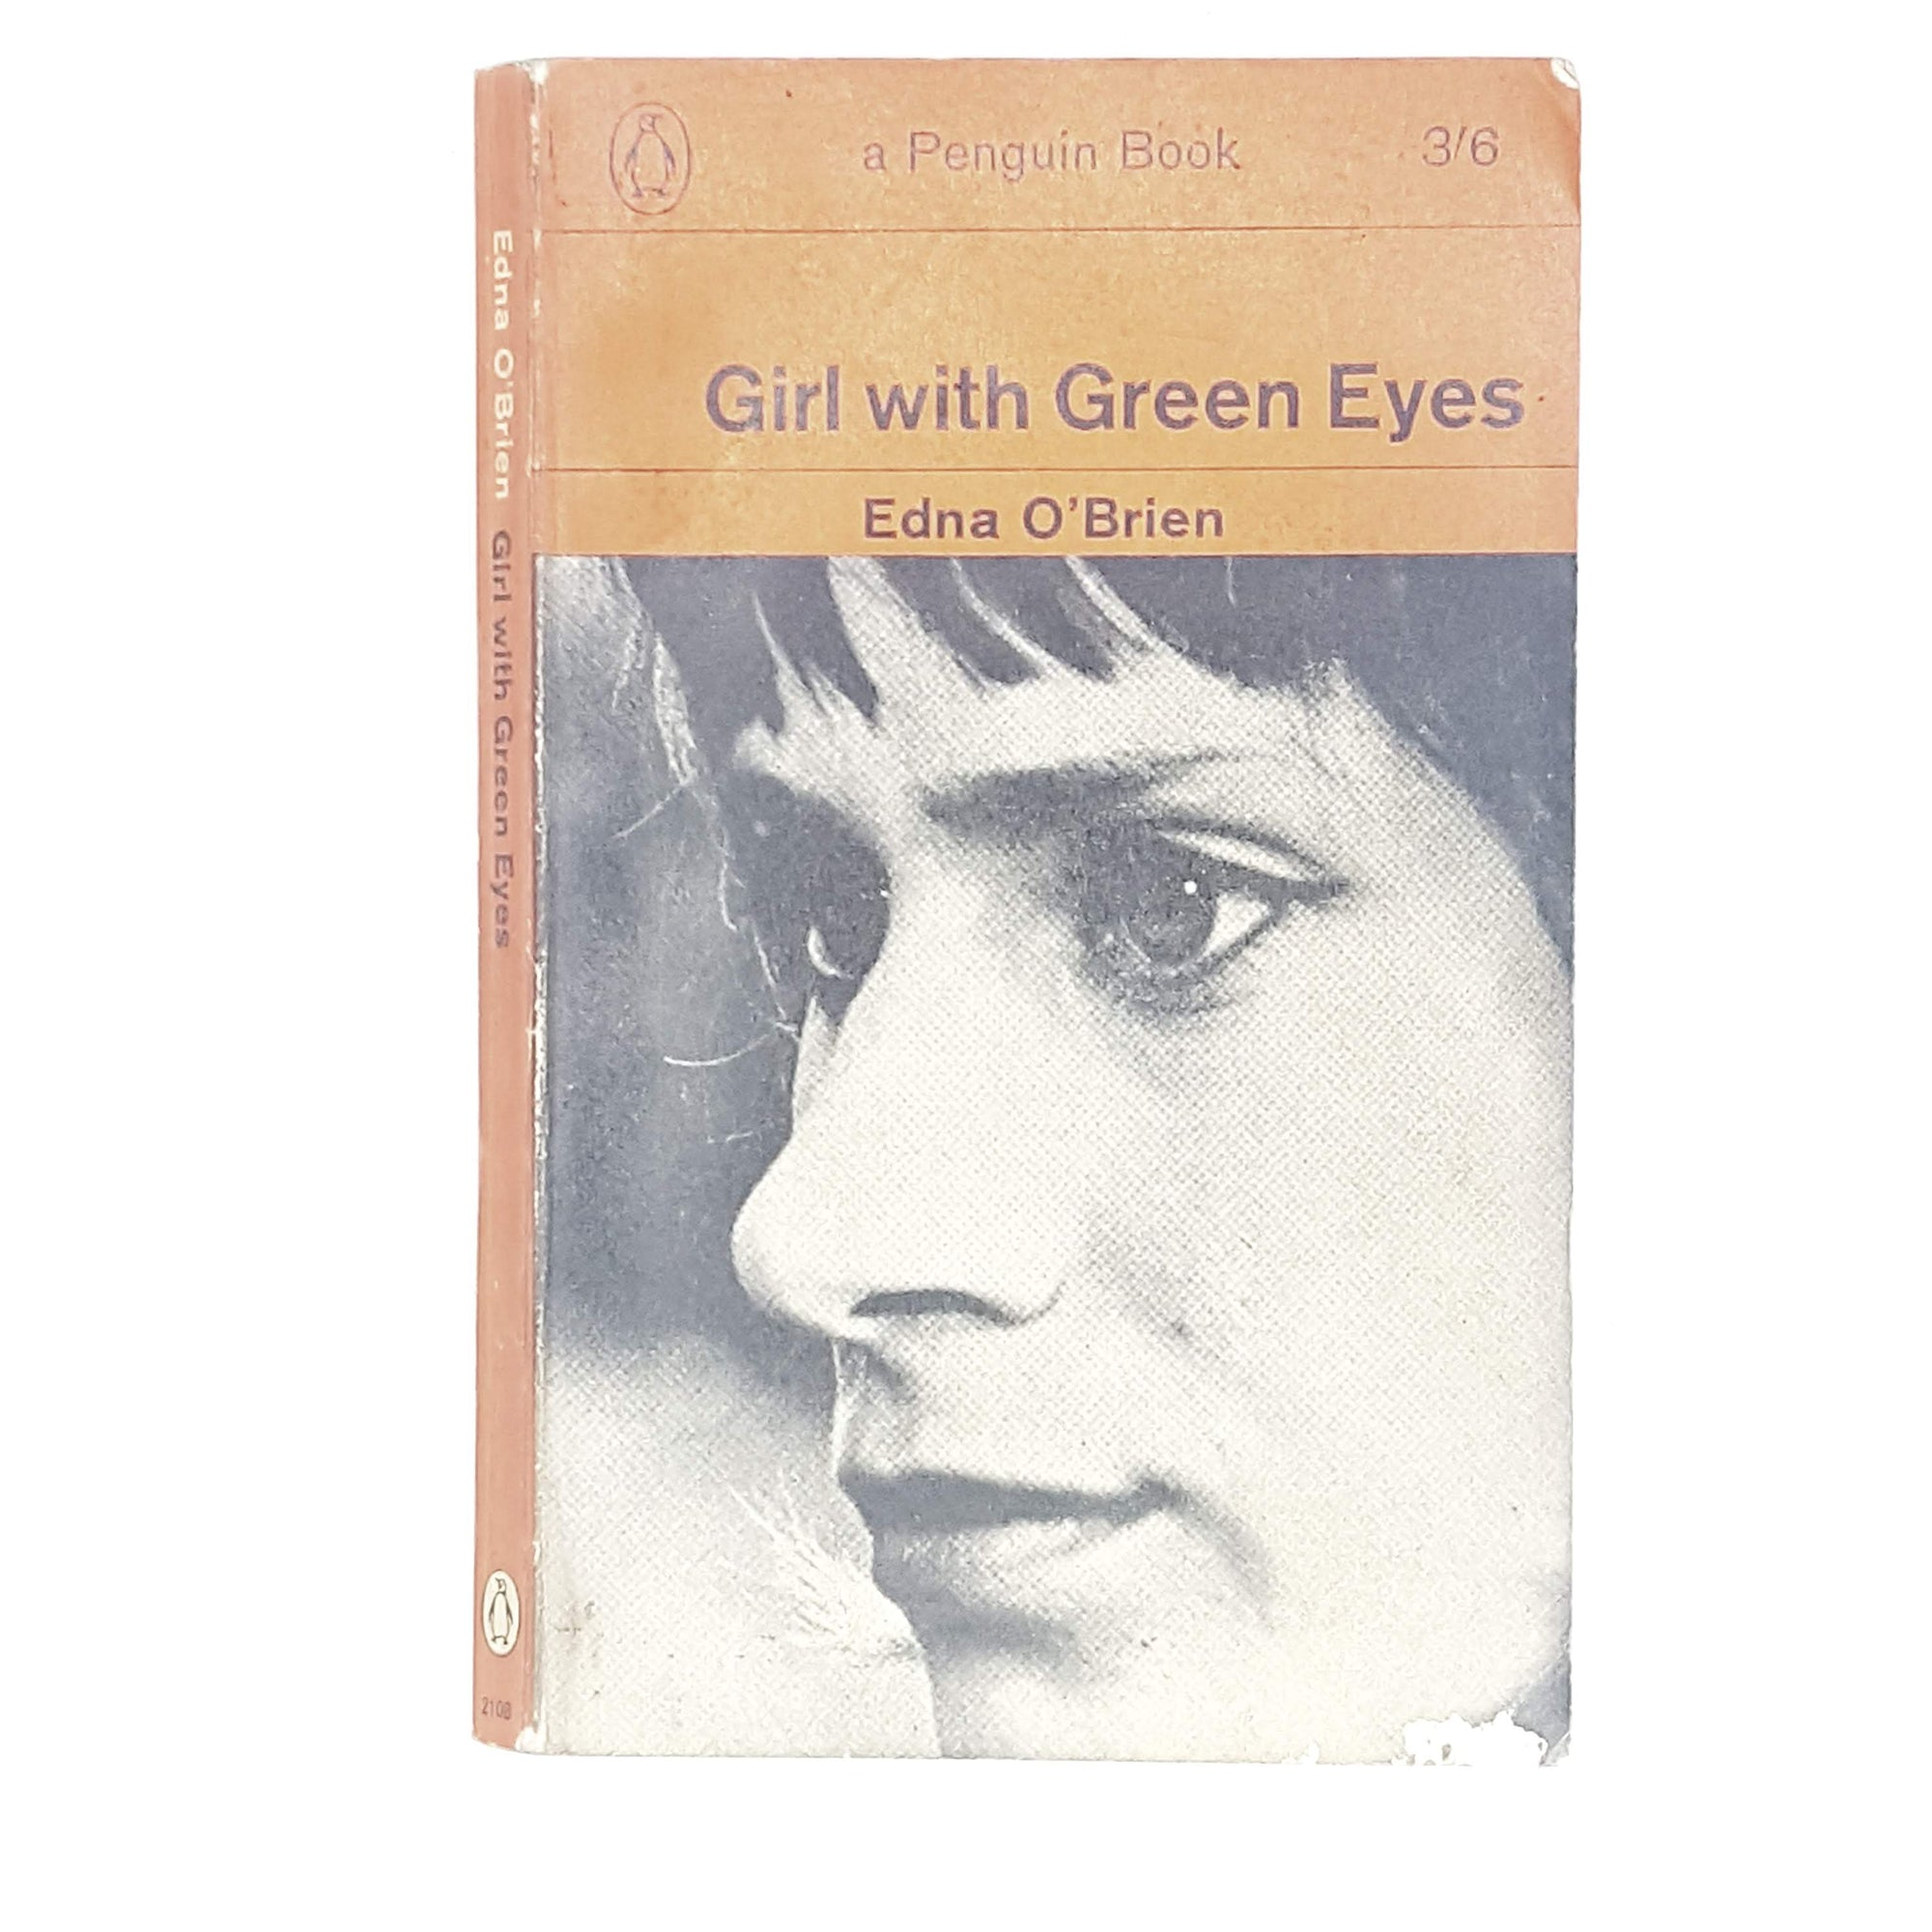 Girl with Green Eyes by Edna O'Brien 1964